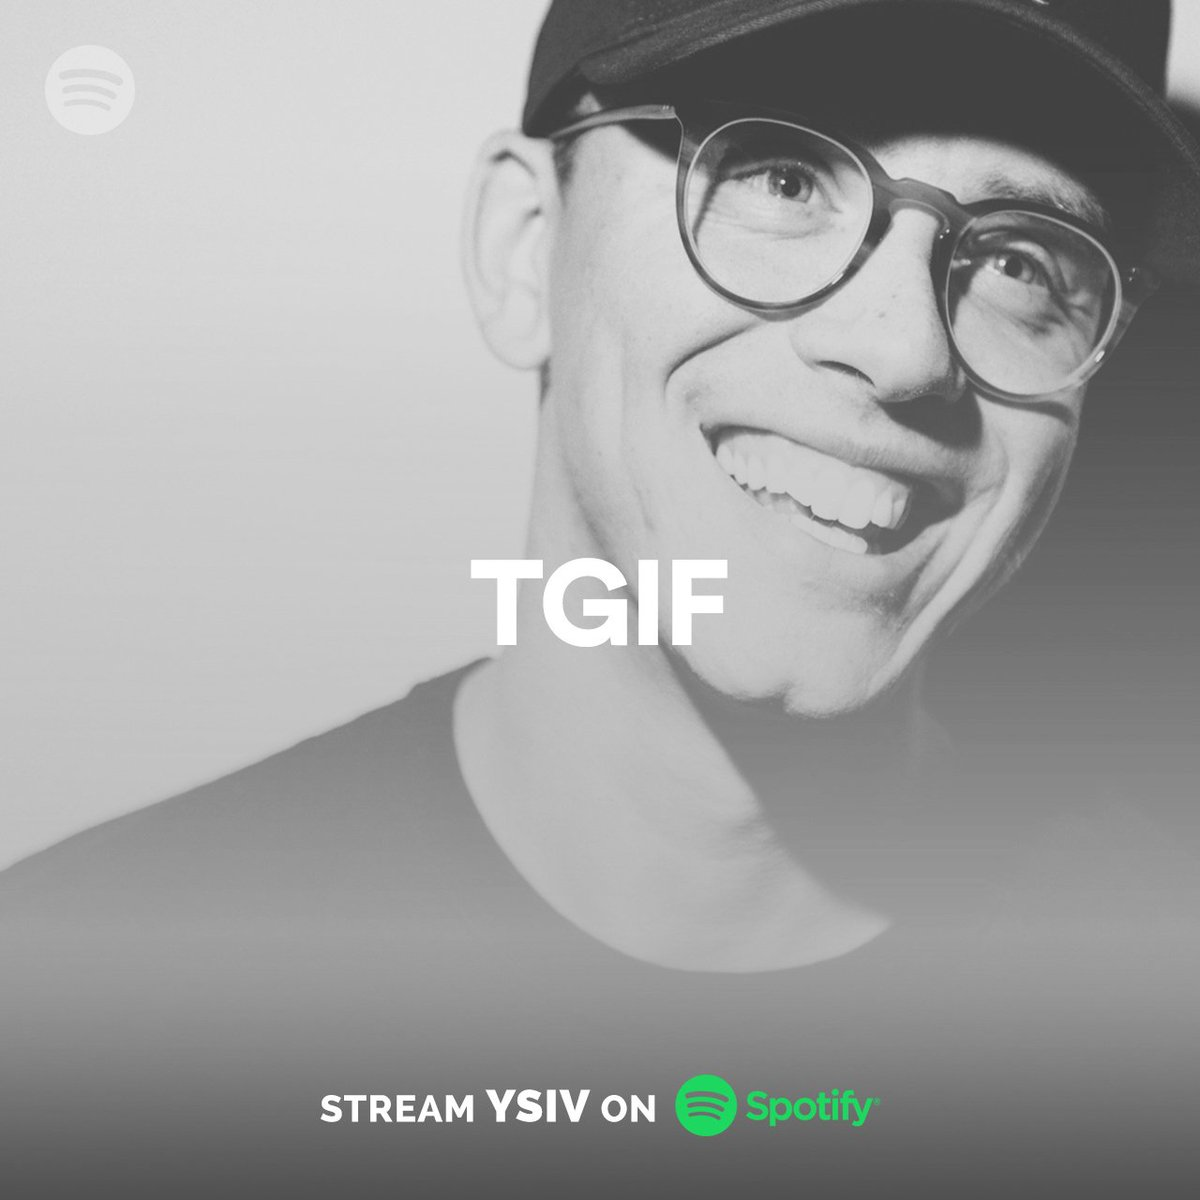 Took over the 'TGIF' playlist this week for @Spotify! open.spotify.com/user/spotify/p…